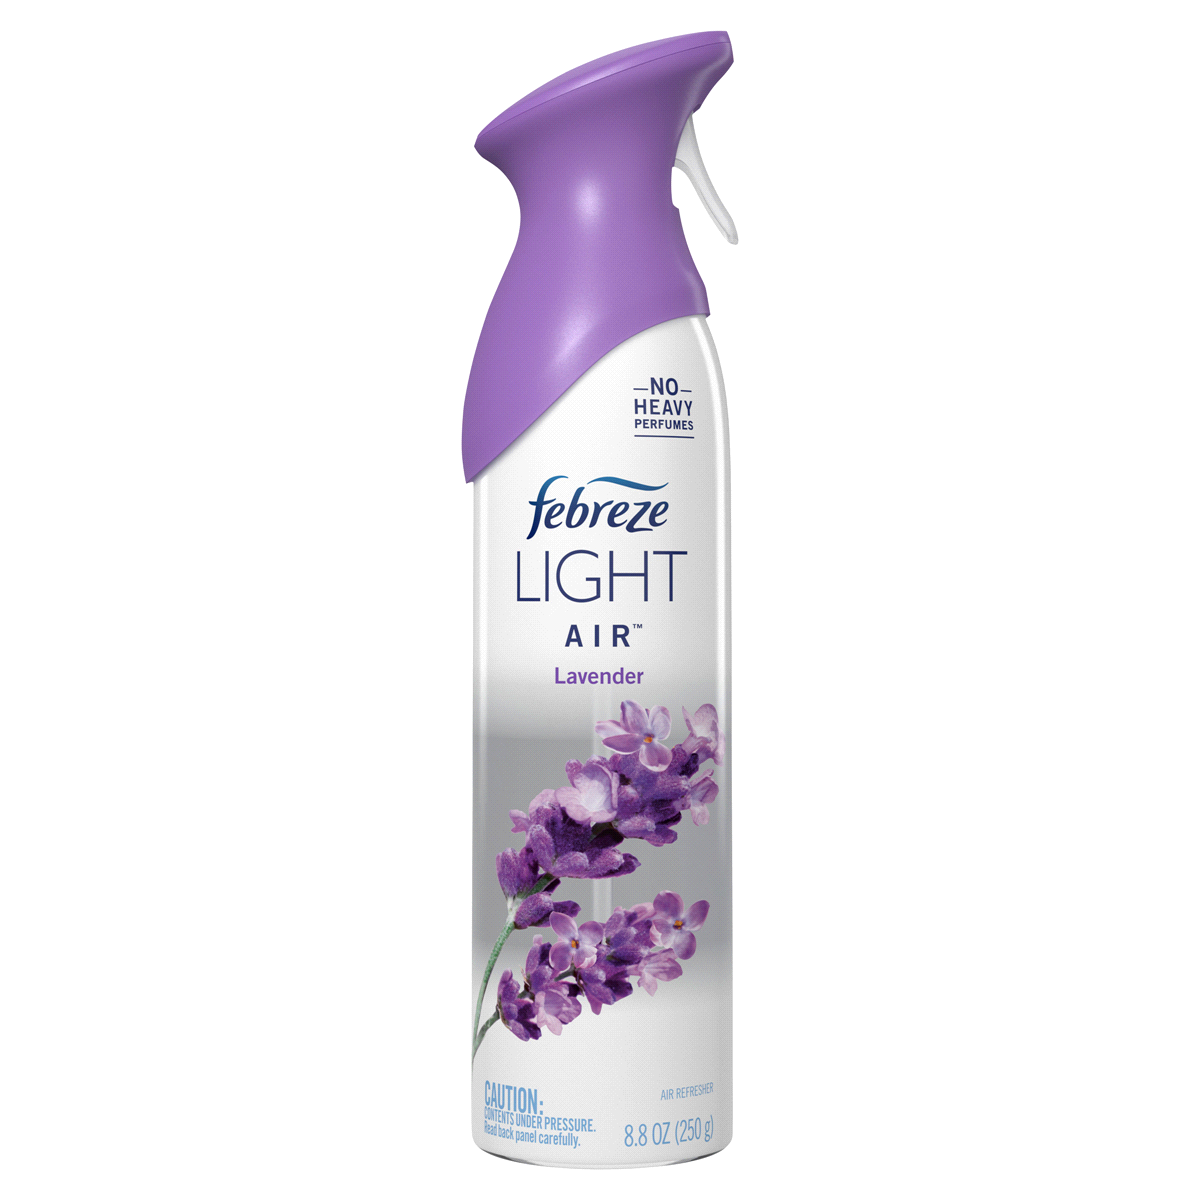 FEBREZE LIGHT ODOR ELIMINATIN AIR FRESHENER LAVENDER 8.8 OZ***SHIP TO ORDER BY EVERY SUNDAY ARRIVES THE NEXT WEEK'S TUESDAY FOR DELIVERY***